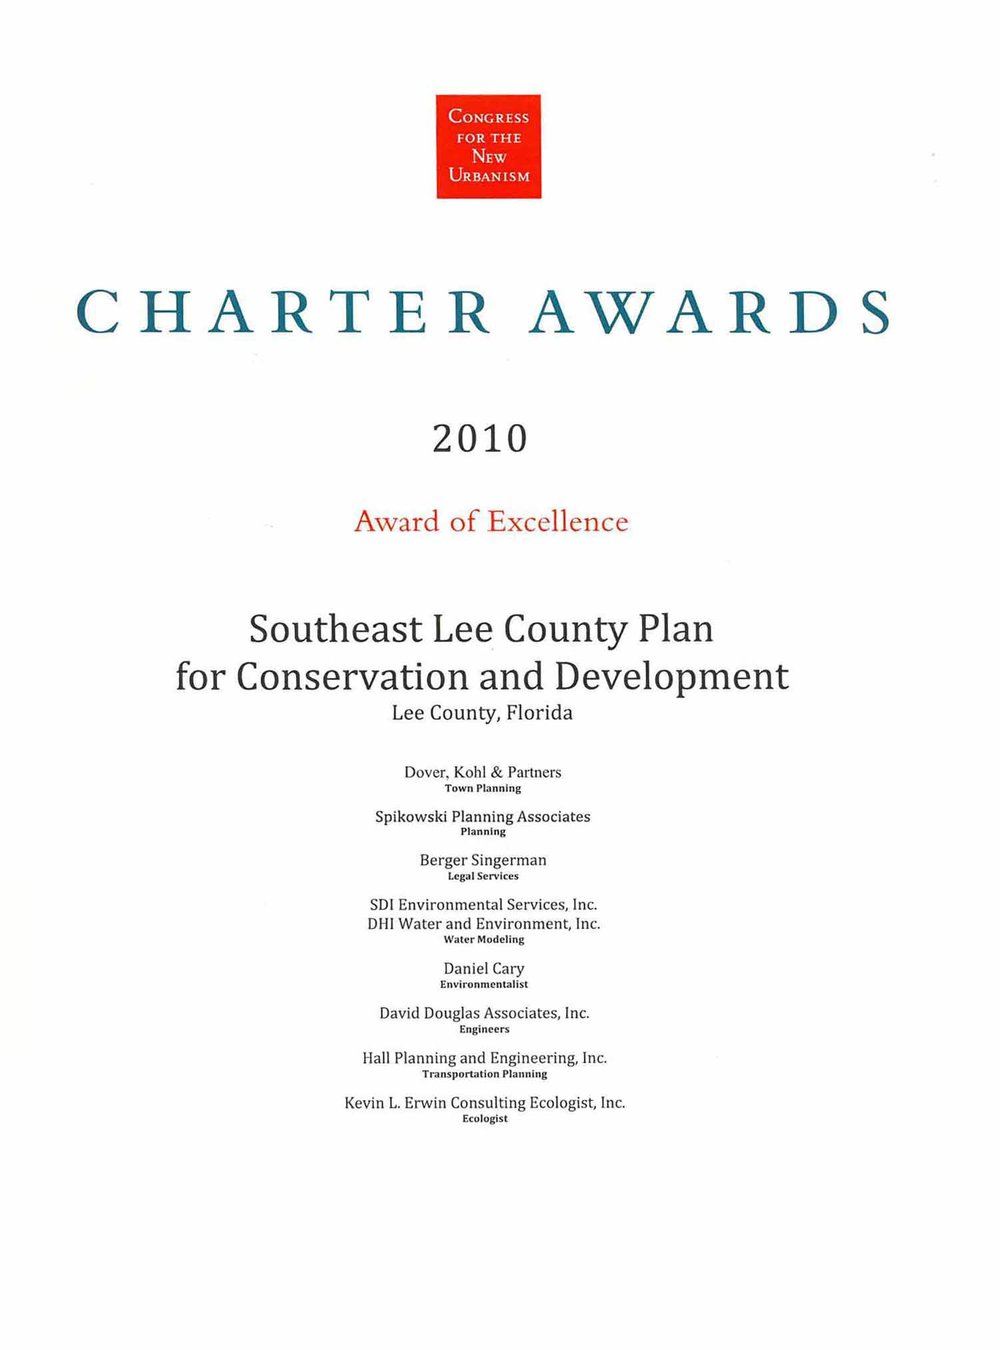 2010-Chapter Awars- of exellence-Southeast Lee County Plan.jpg